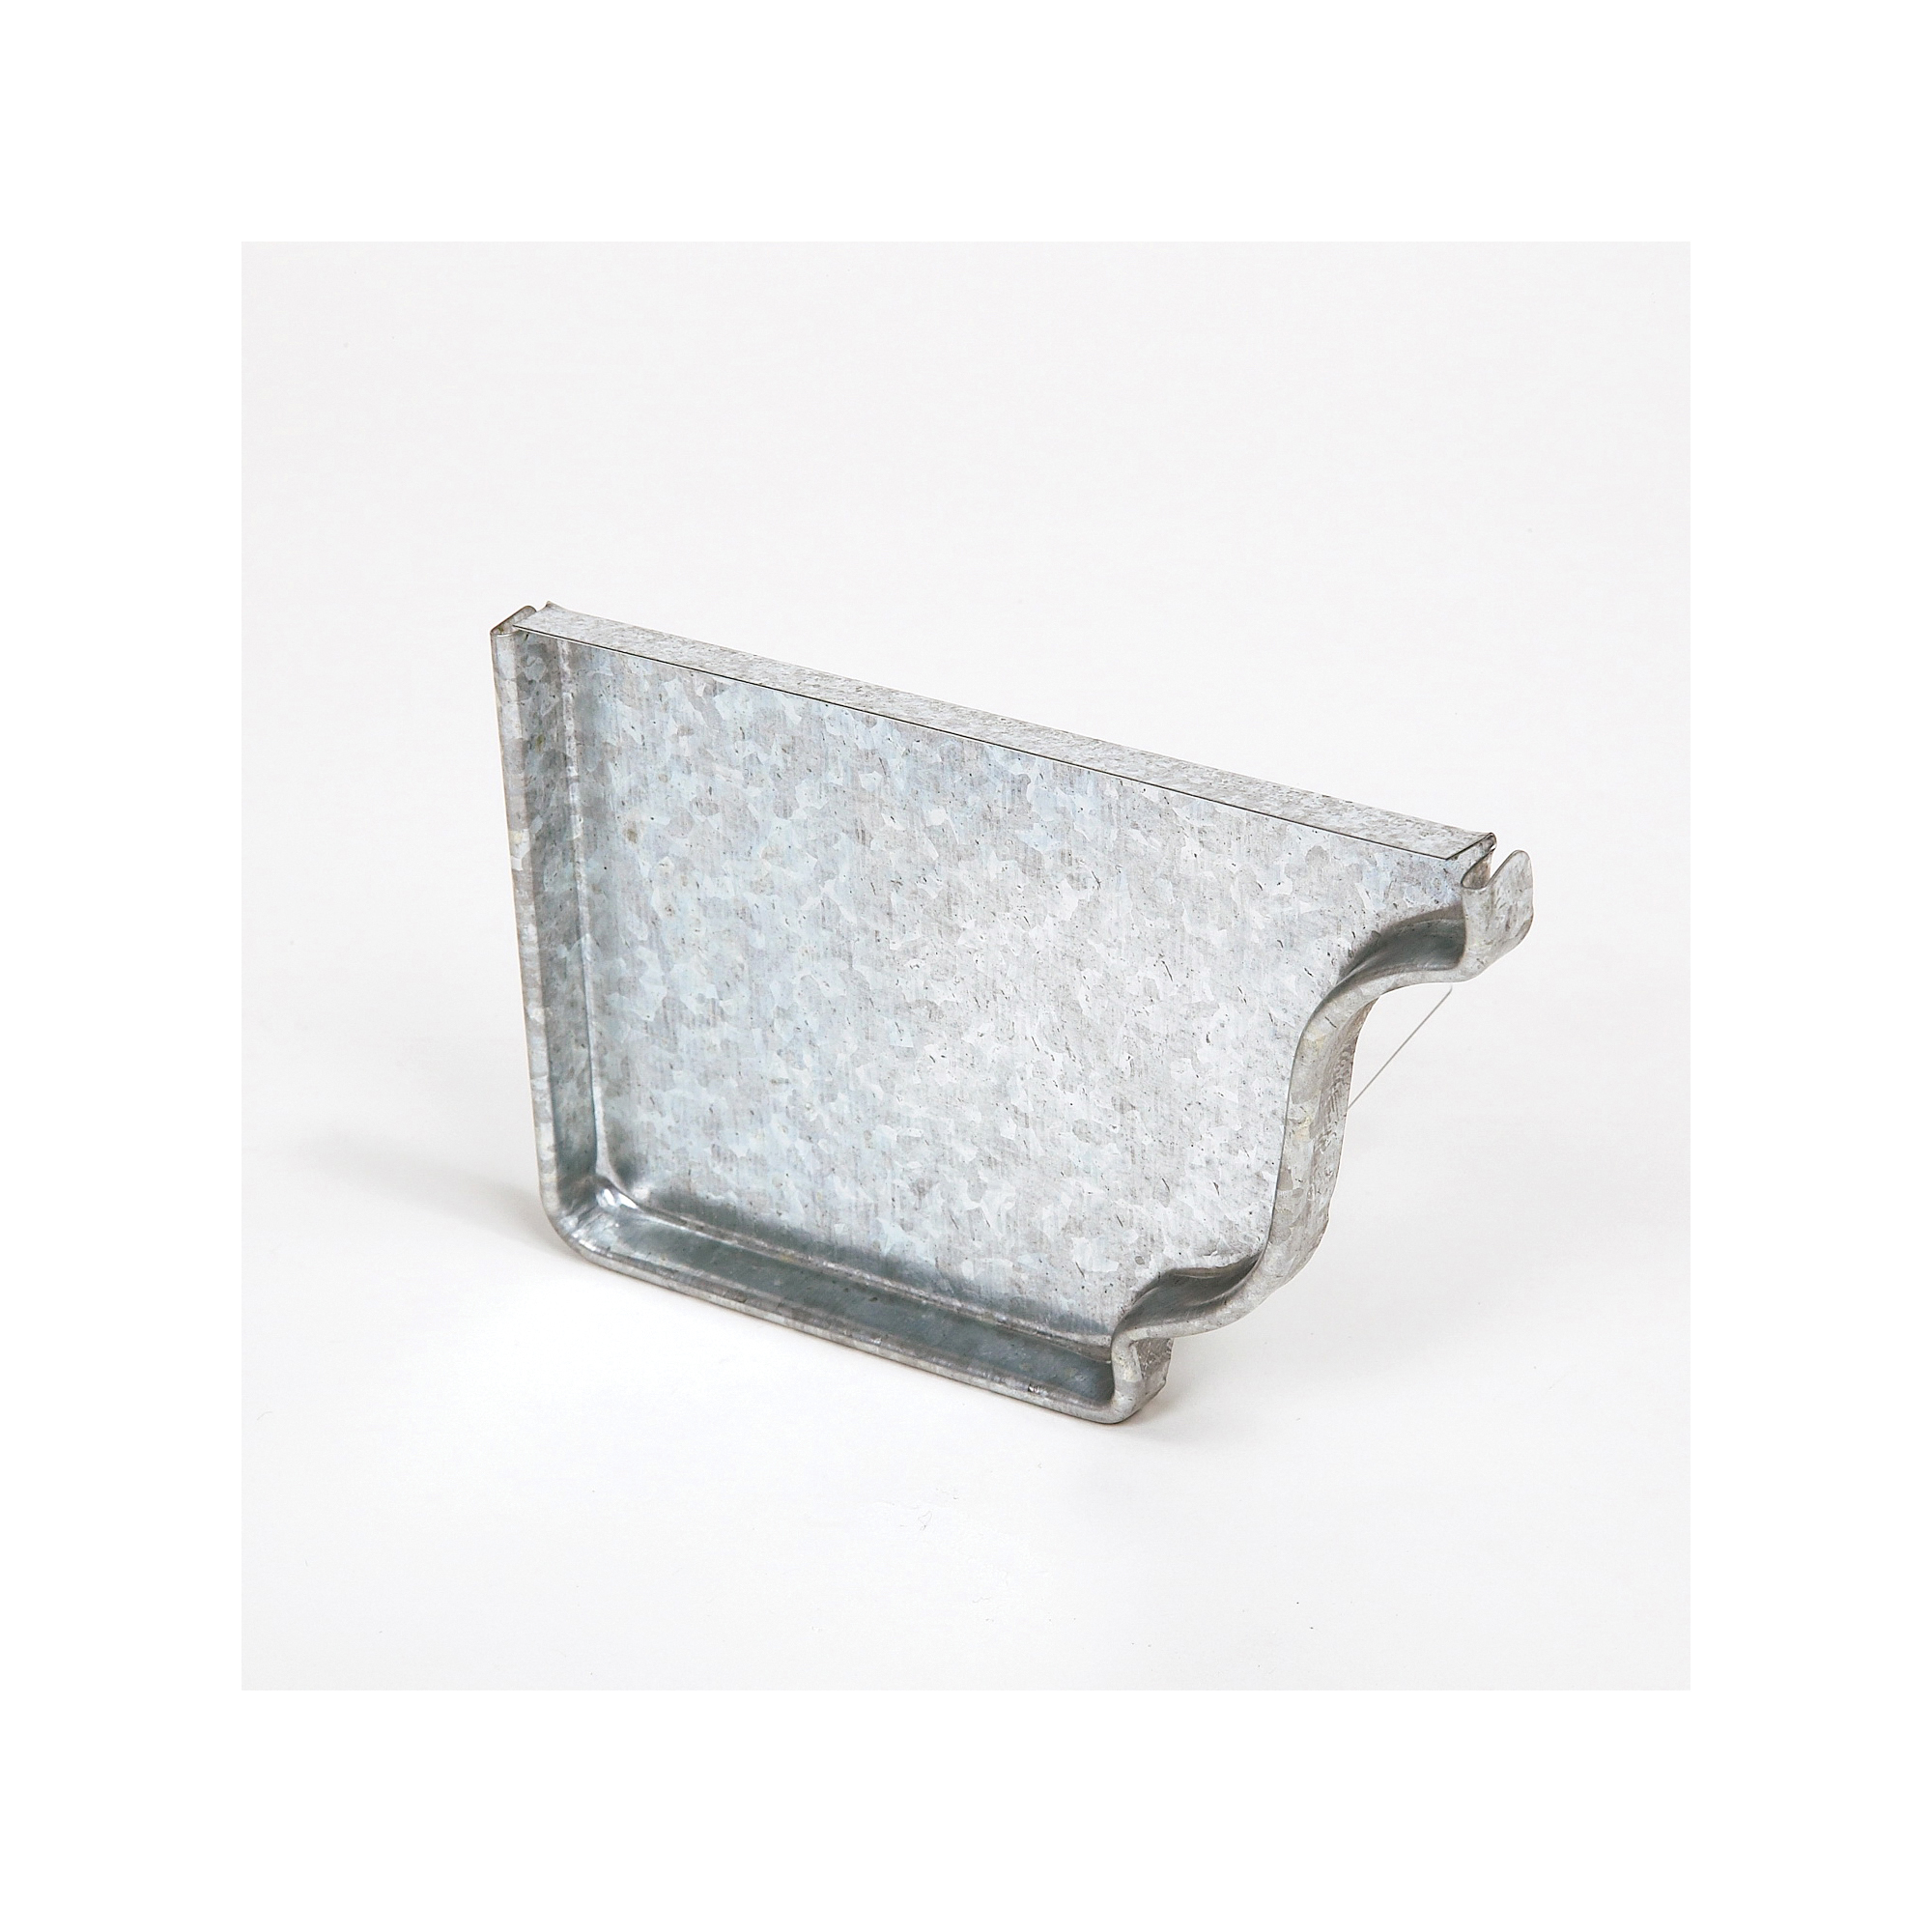 Picture of Amerimax 29205 Gutter End Cap, 5 in L, Galvanized Steel, For: 5 in K-Style Gutter System